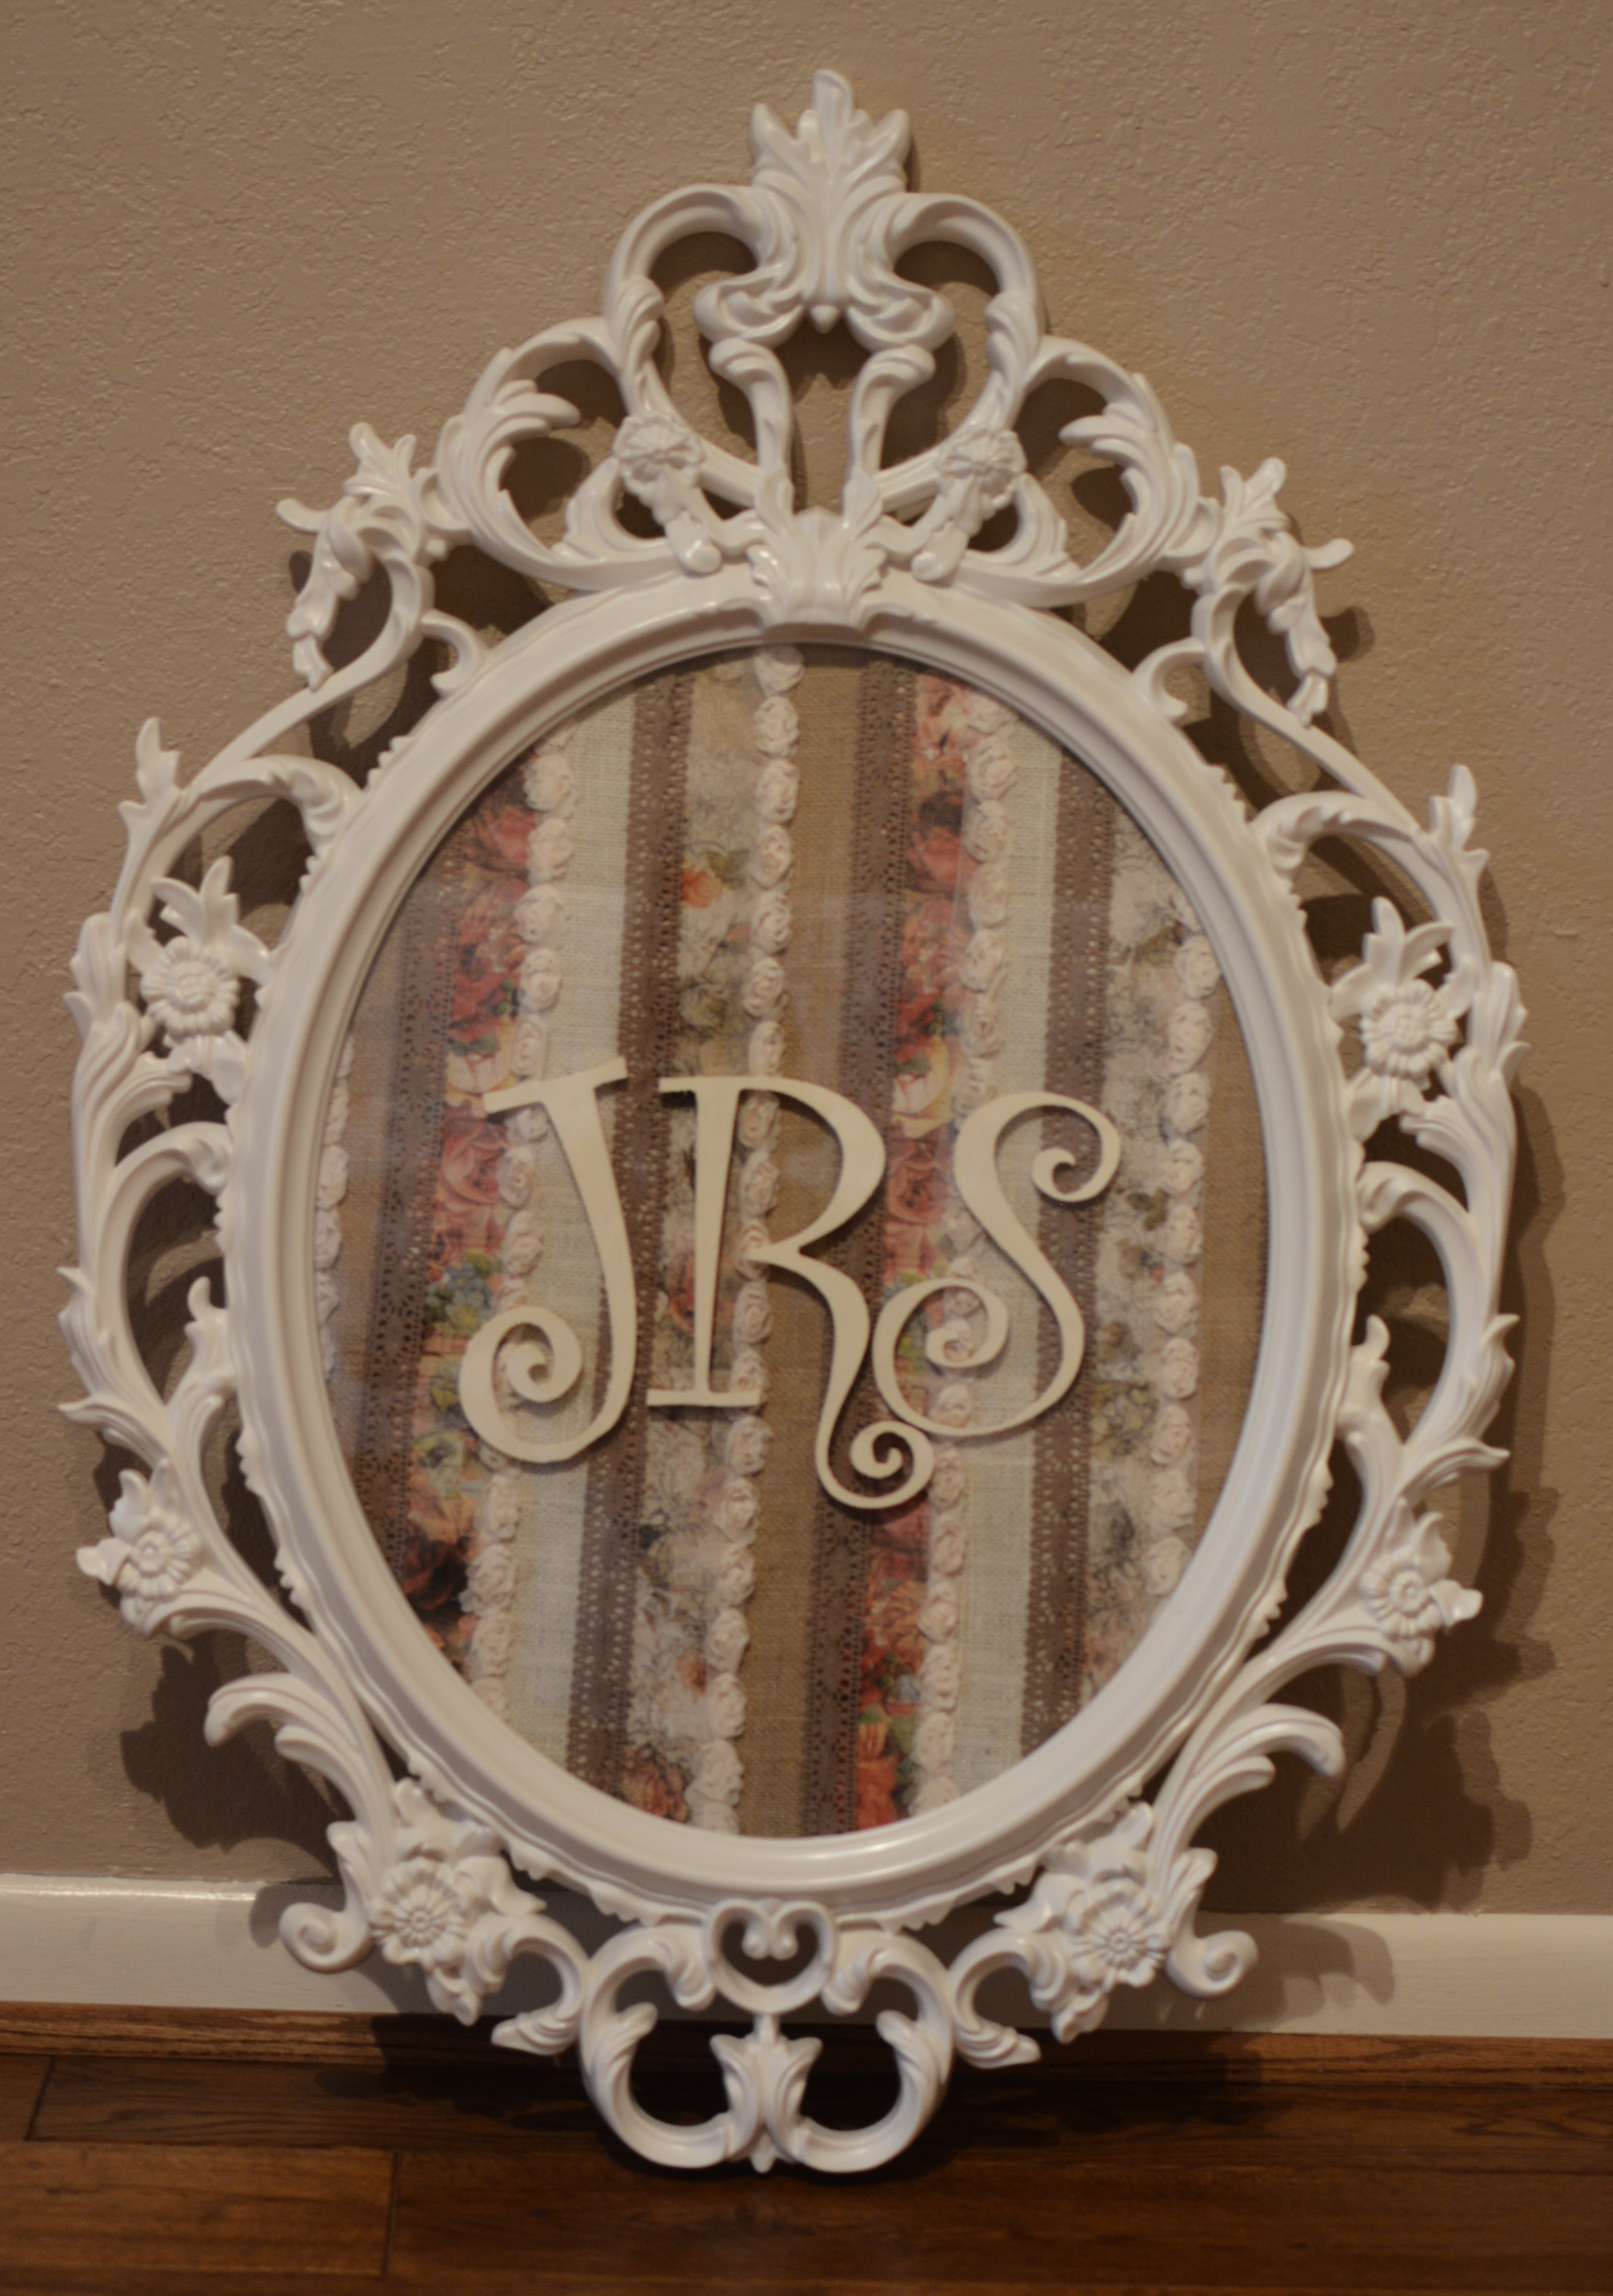 this mirror was purchased on clearance from hobby lobby